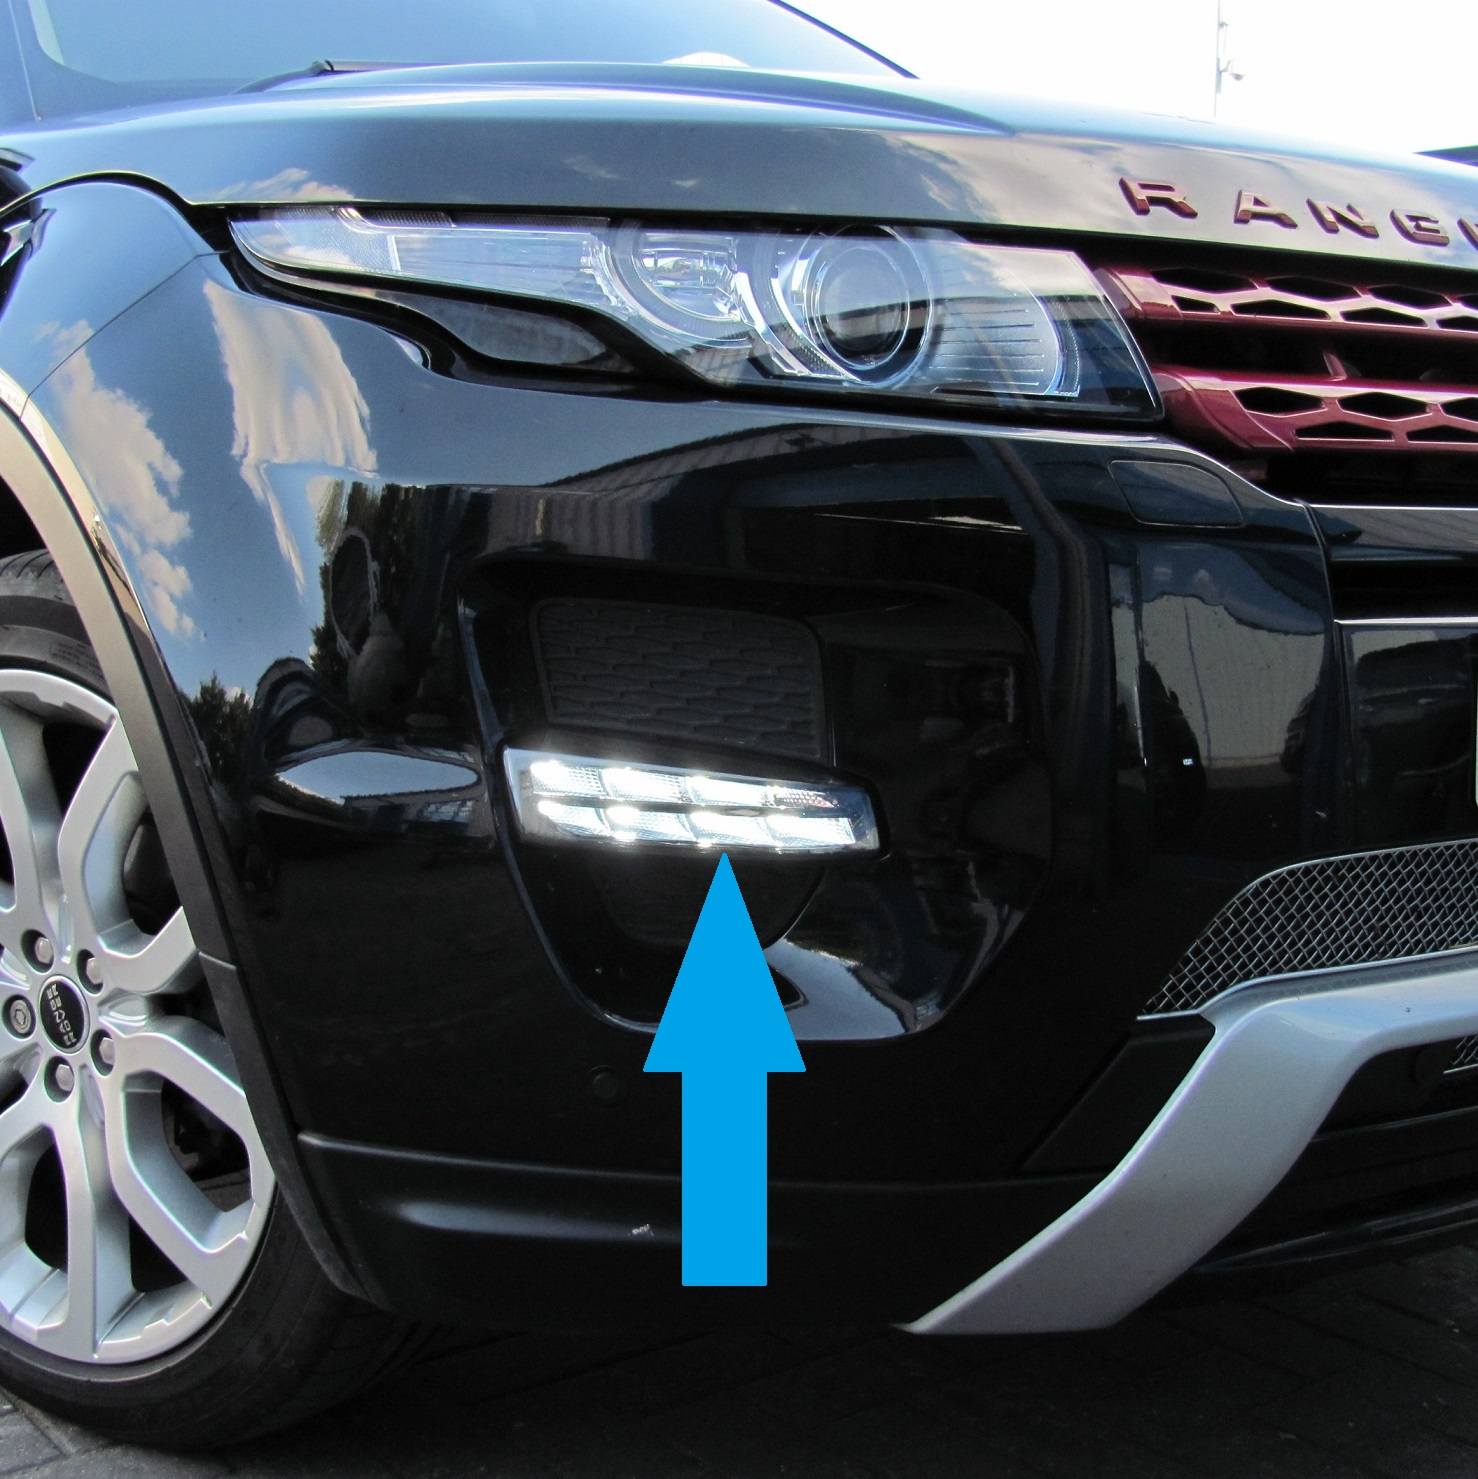 Range Rover Evoque LED DRL Front Fog Lamps Lights Upgrade